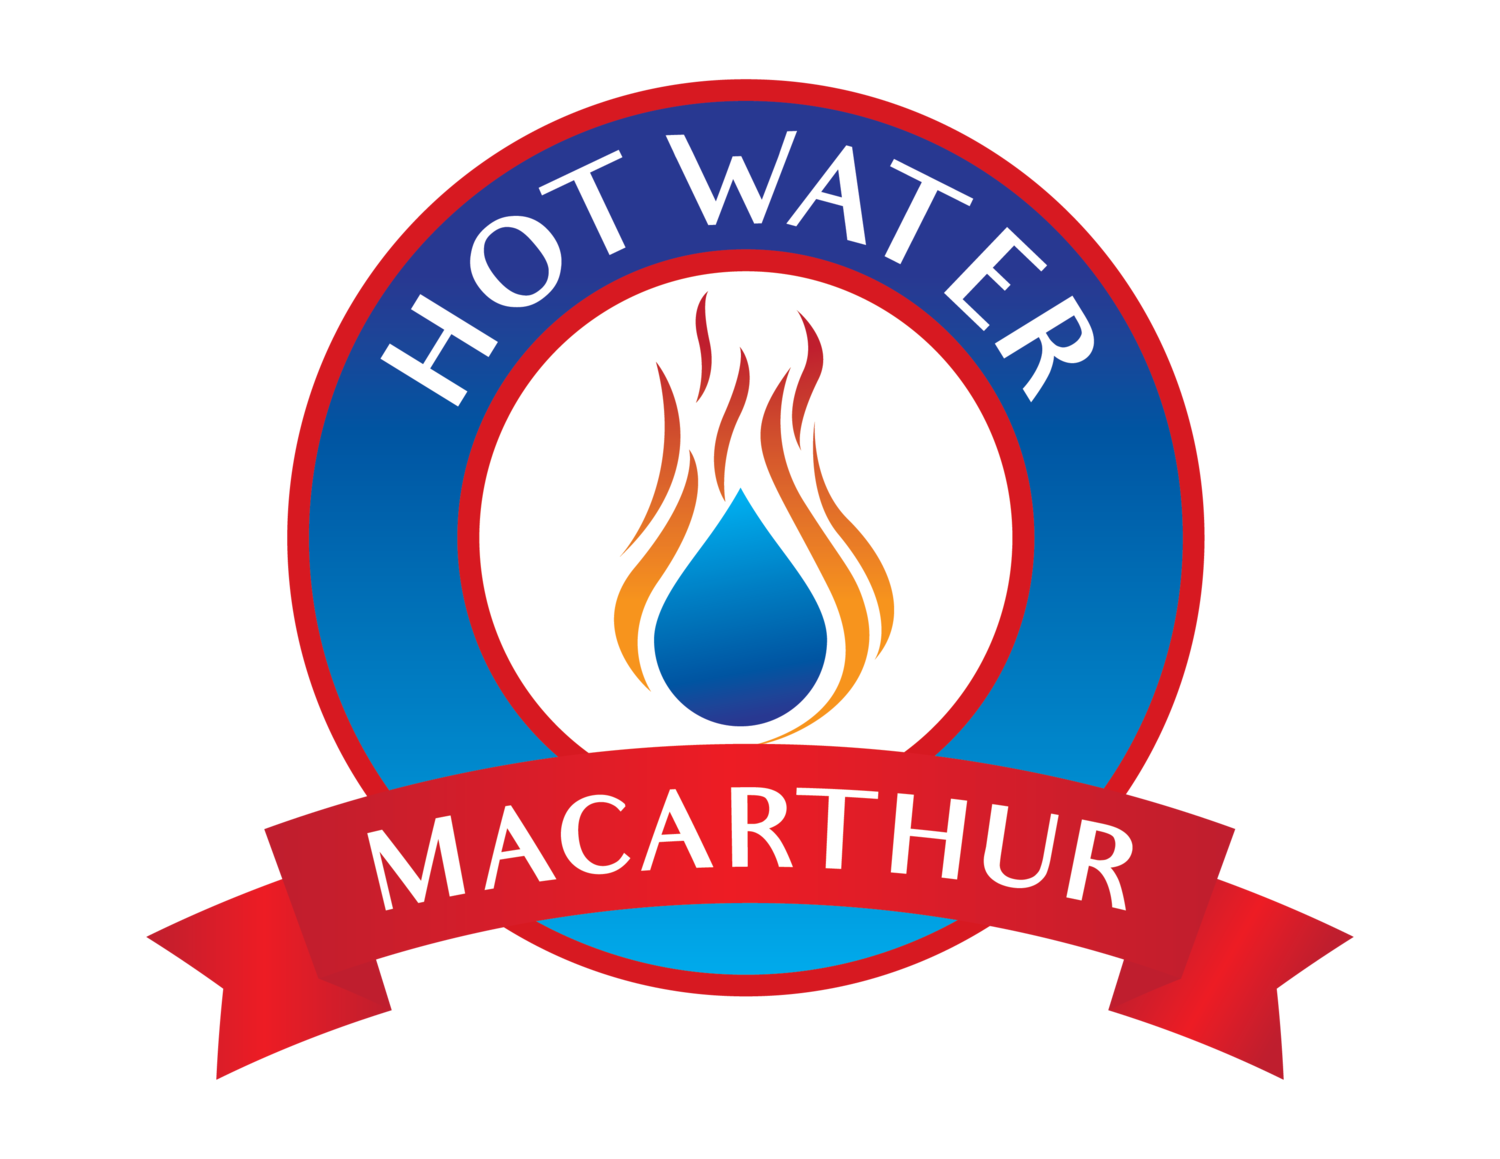 Hot Water Macarthur